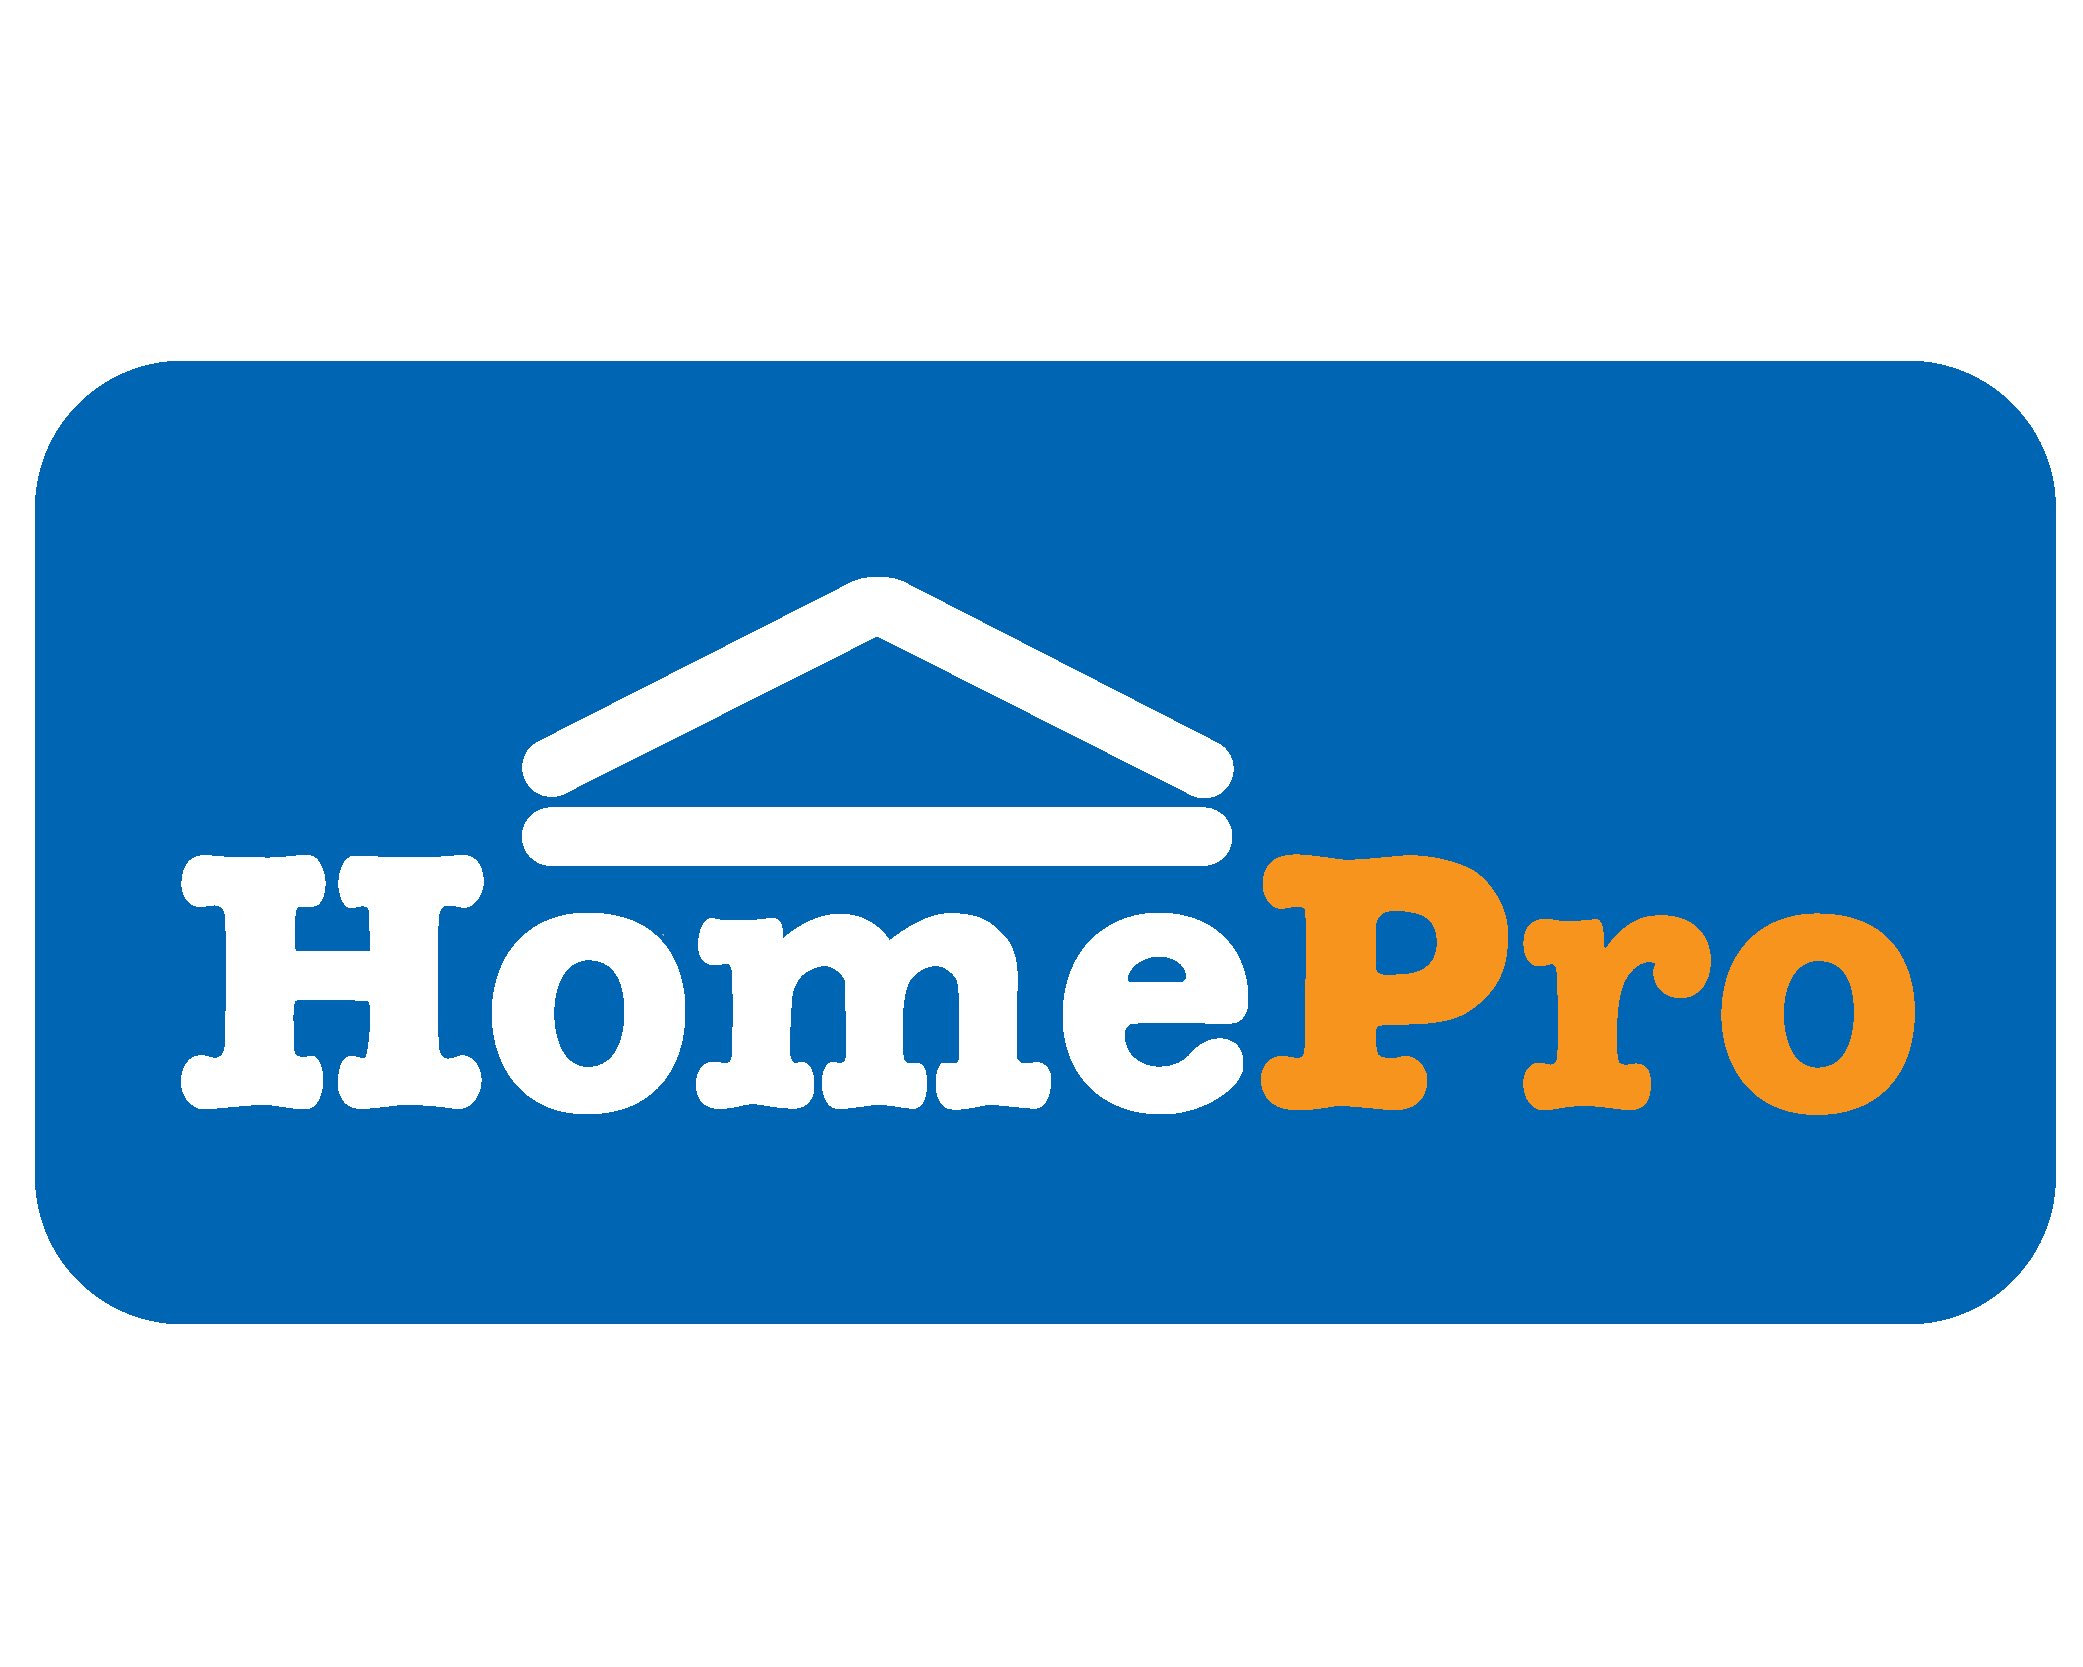 home pro logo 01 bticino Home Electrical Wiring Color Code Home Electrical Wiring Colors